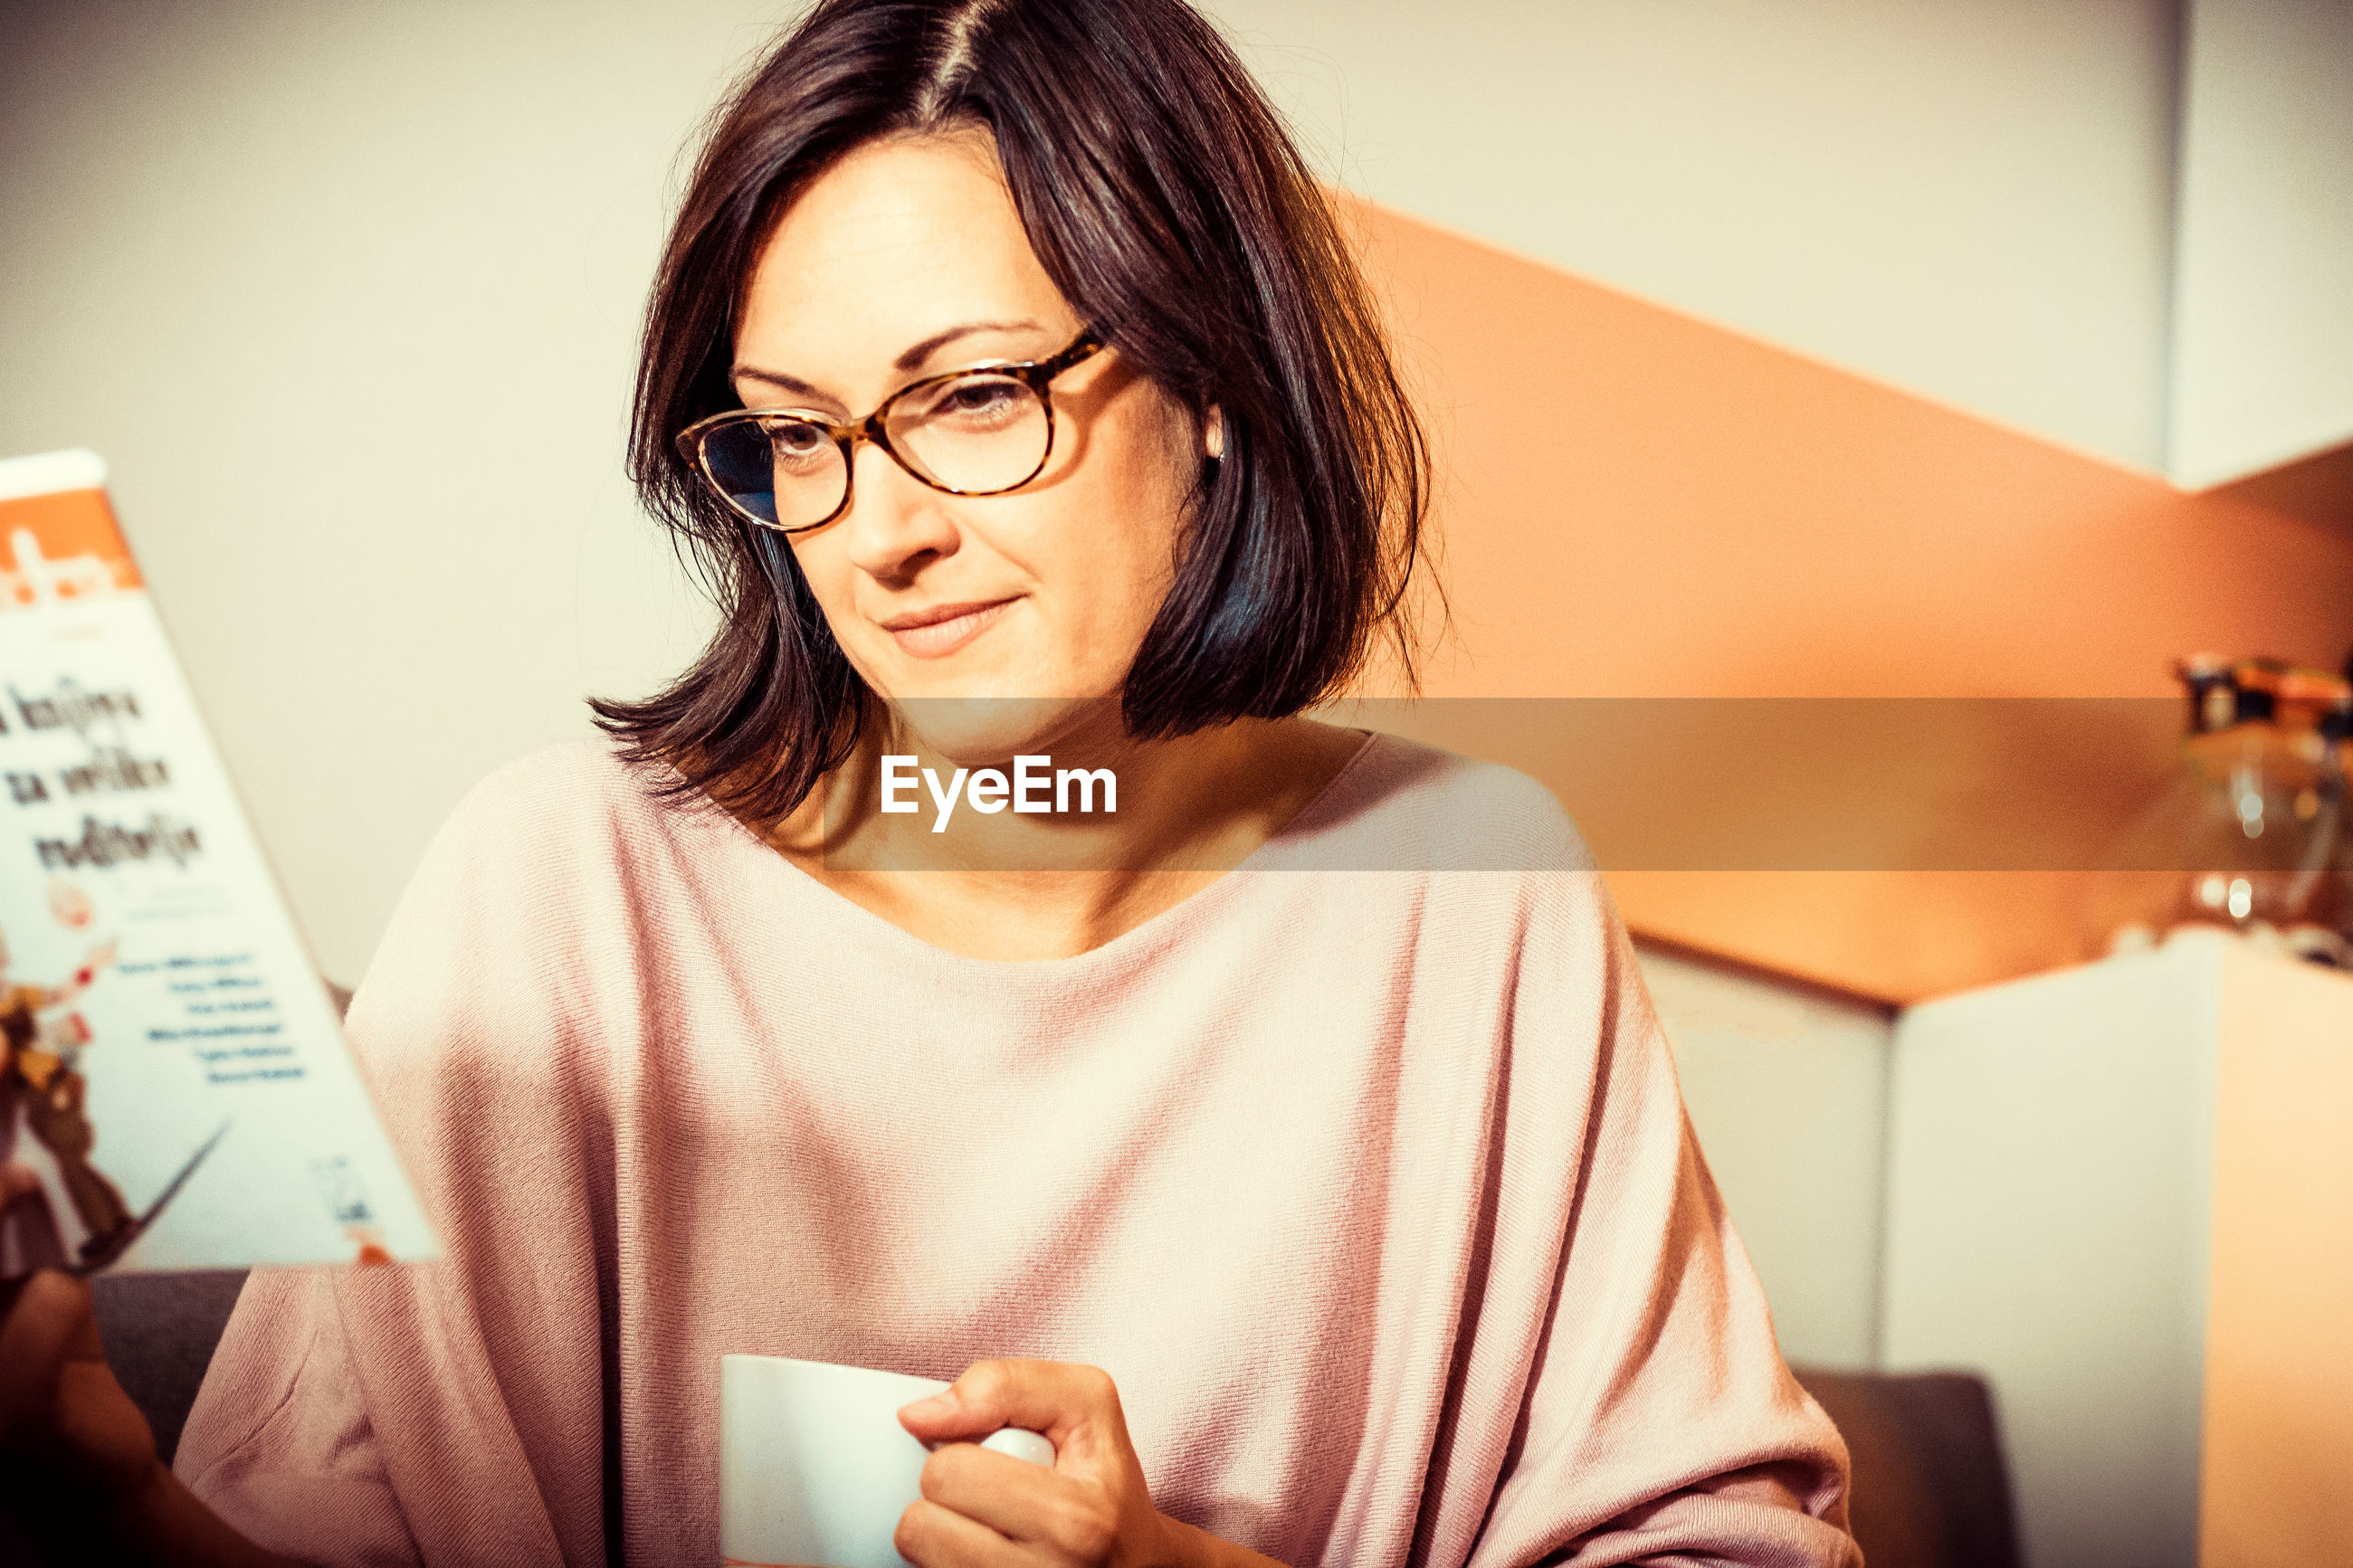 Smiling woman reading a novel while relaxing at home and drinking coffee.